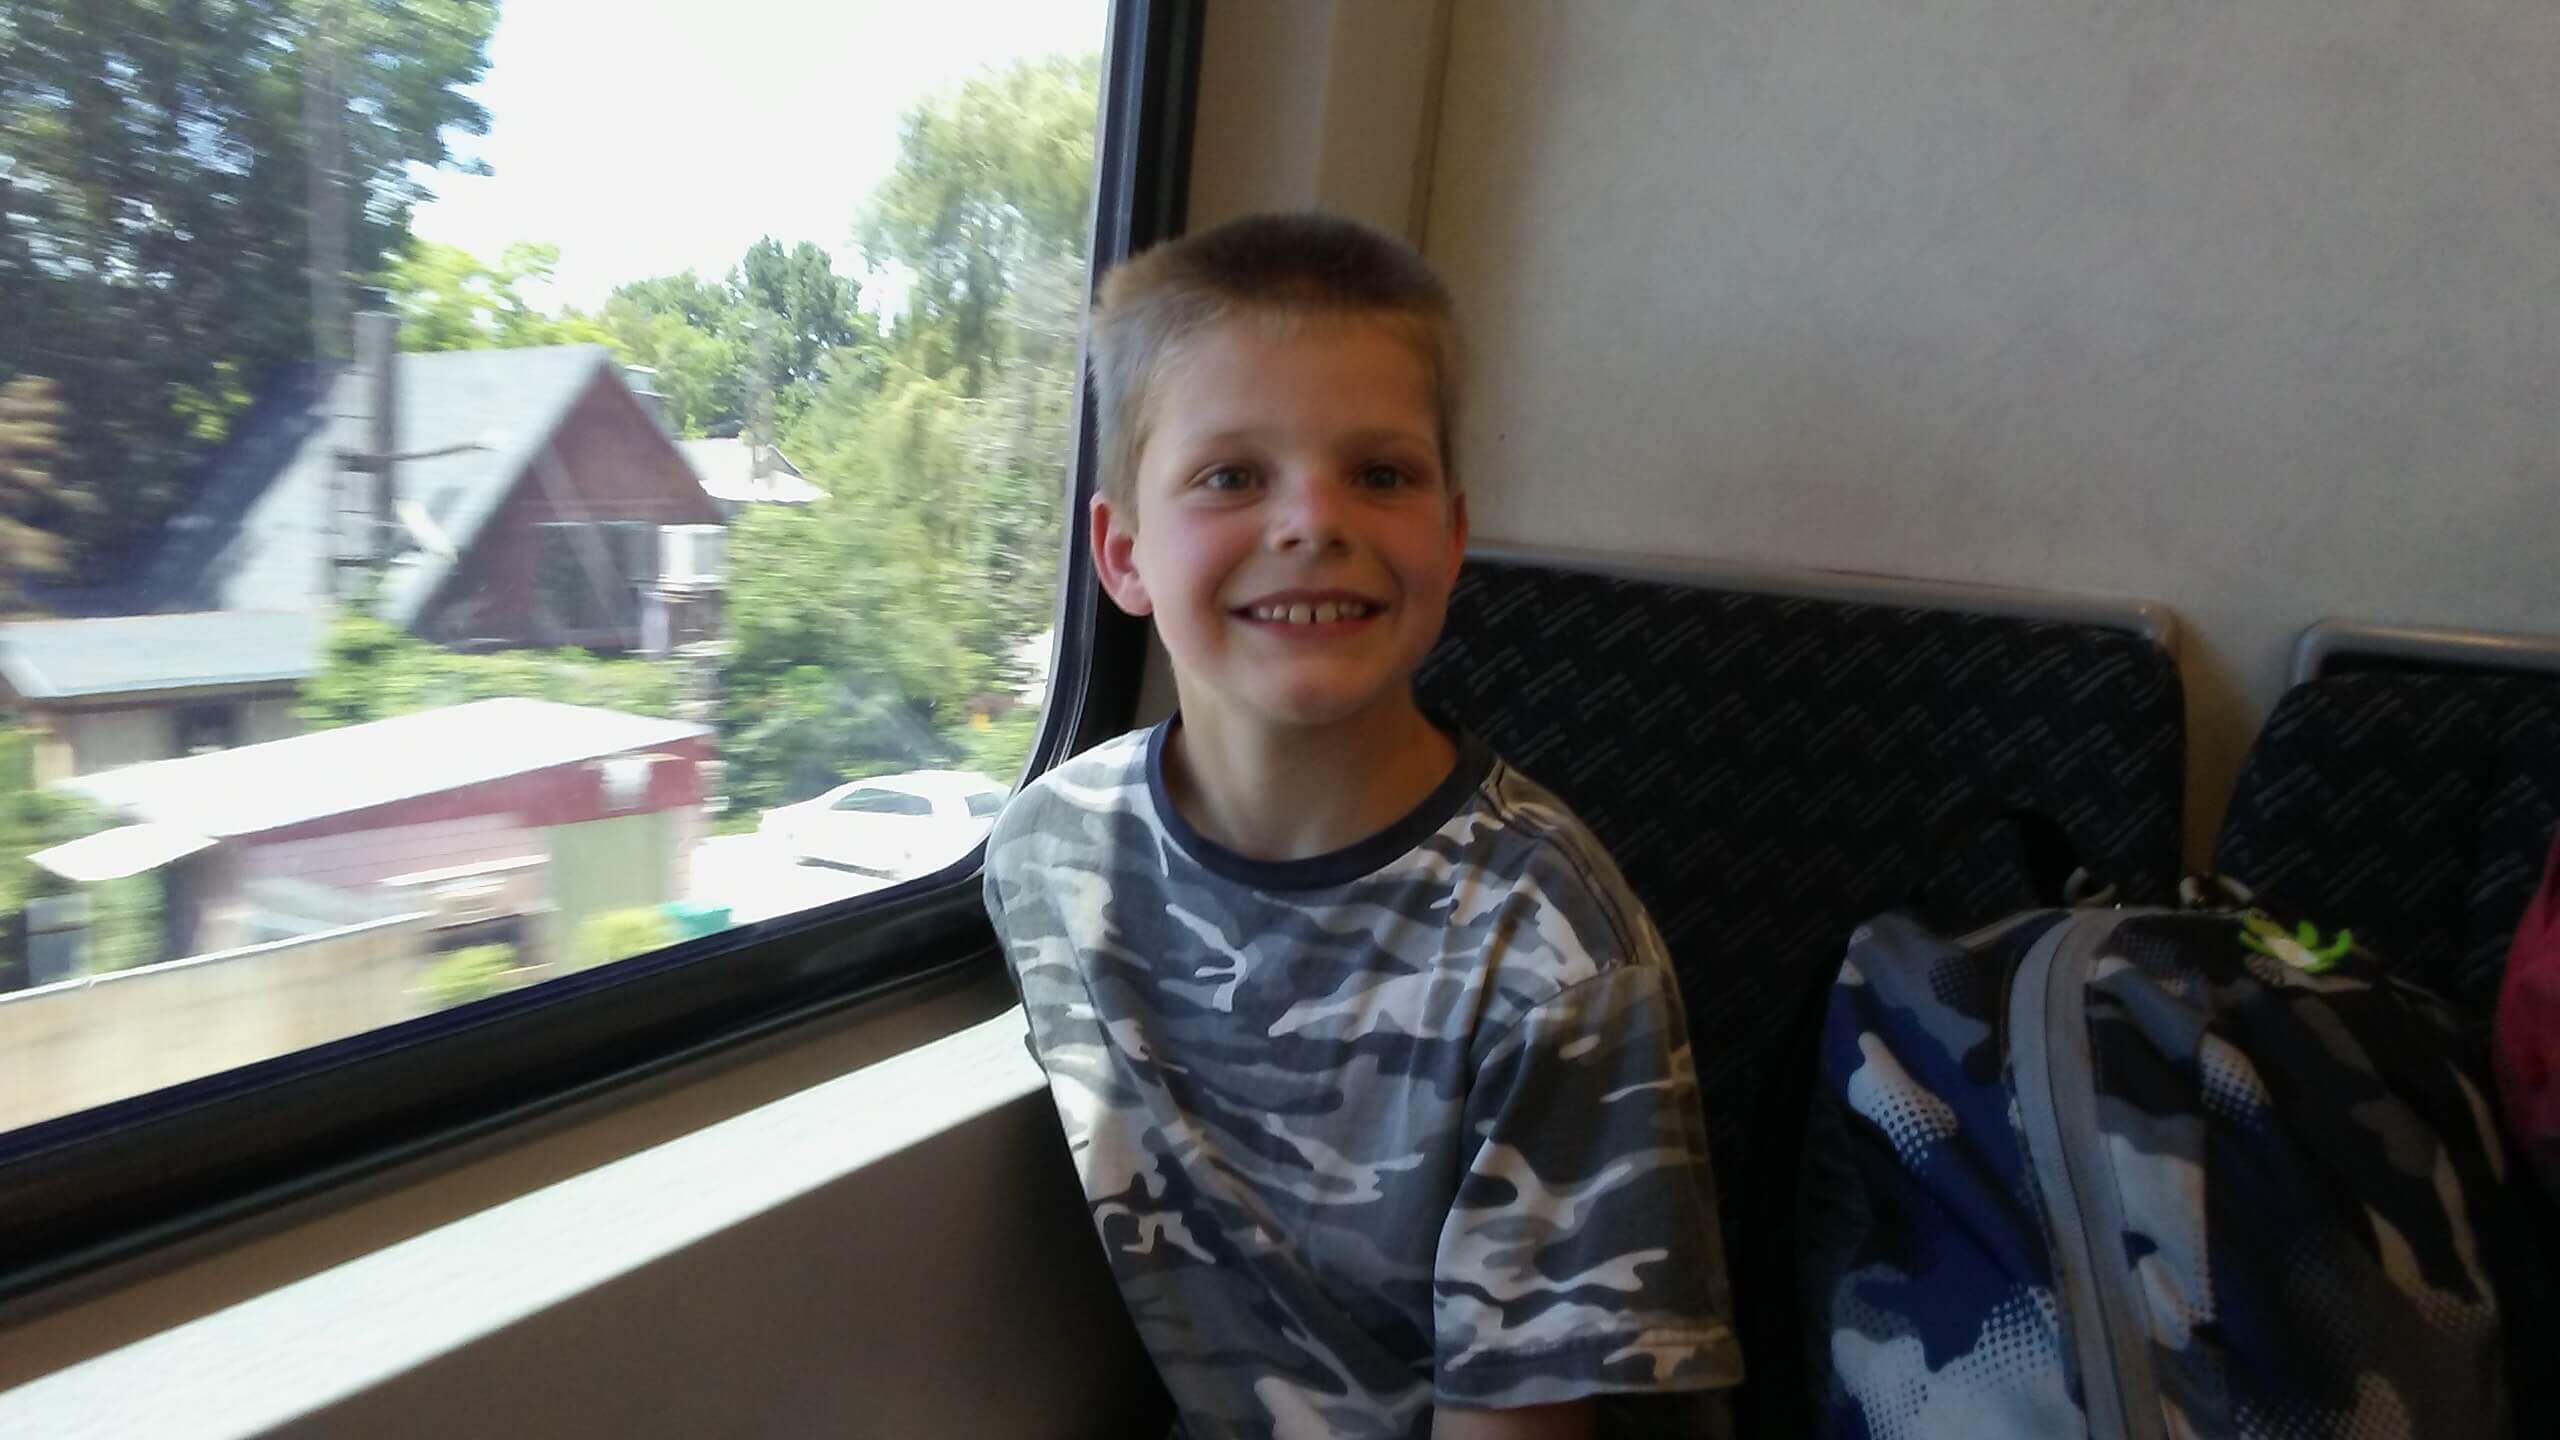 Little Man on FrontRunner